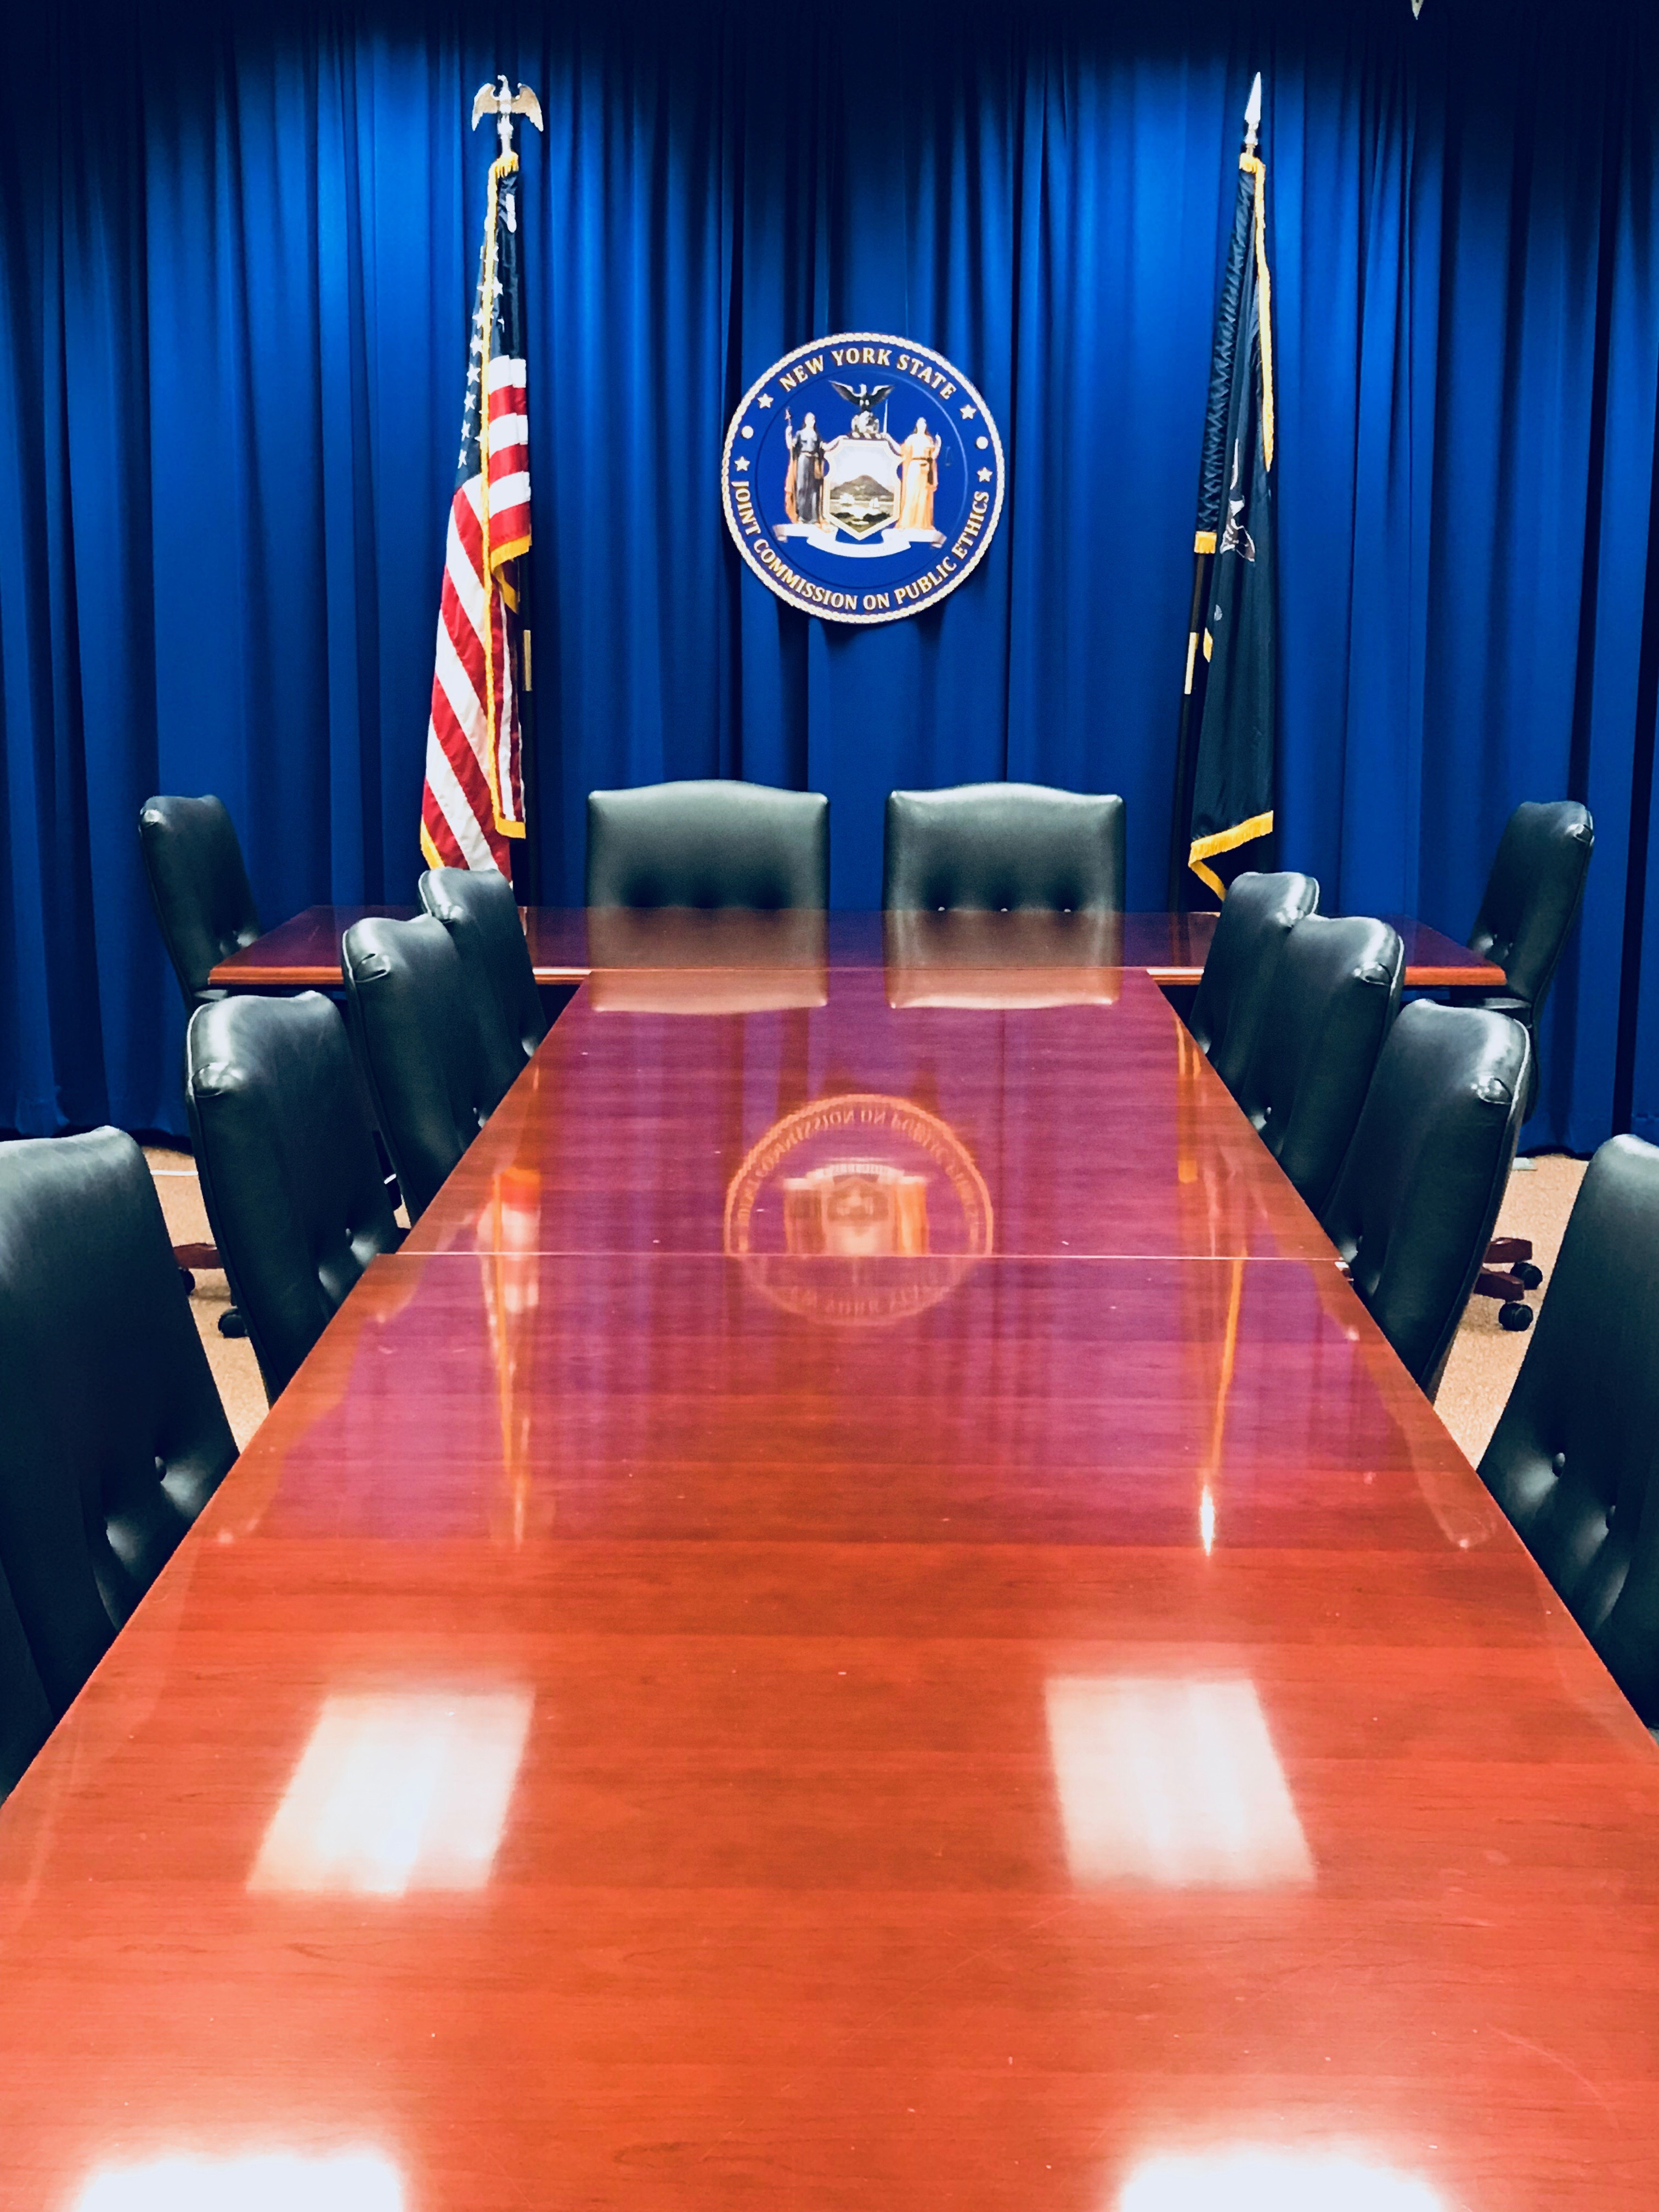 About The New York State Joint Commission On Public Ethics